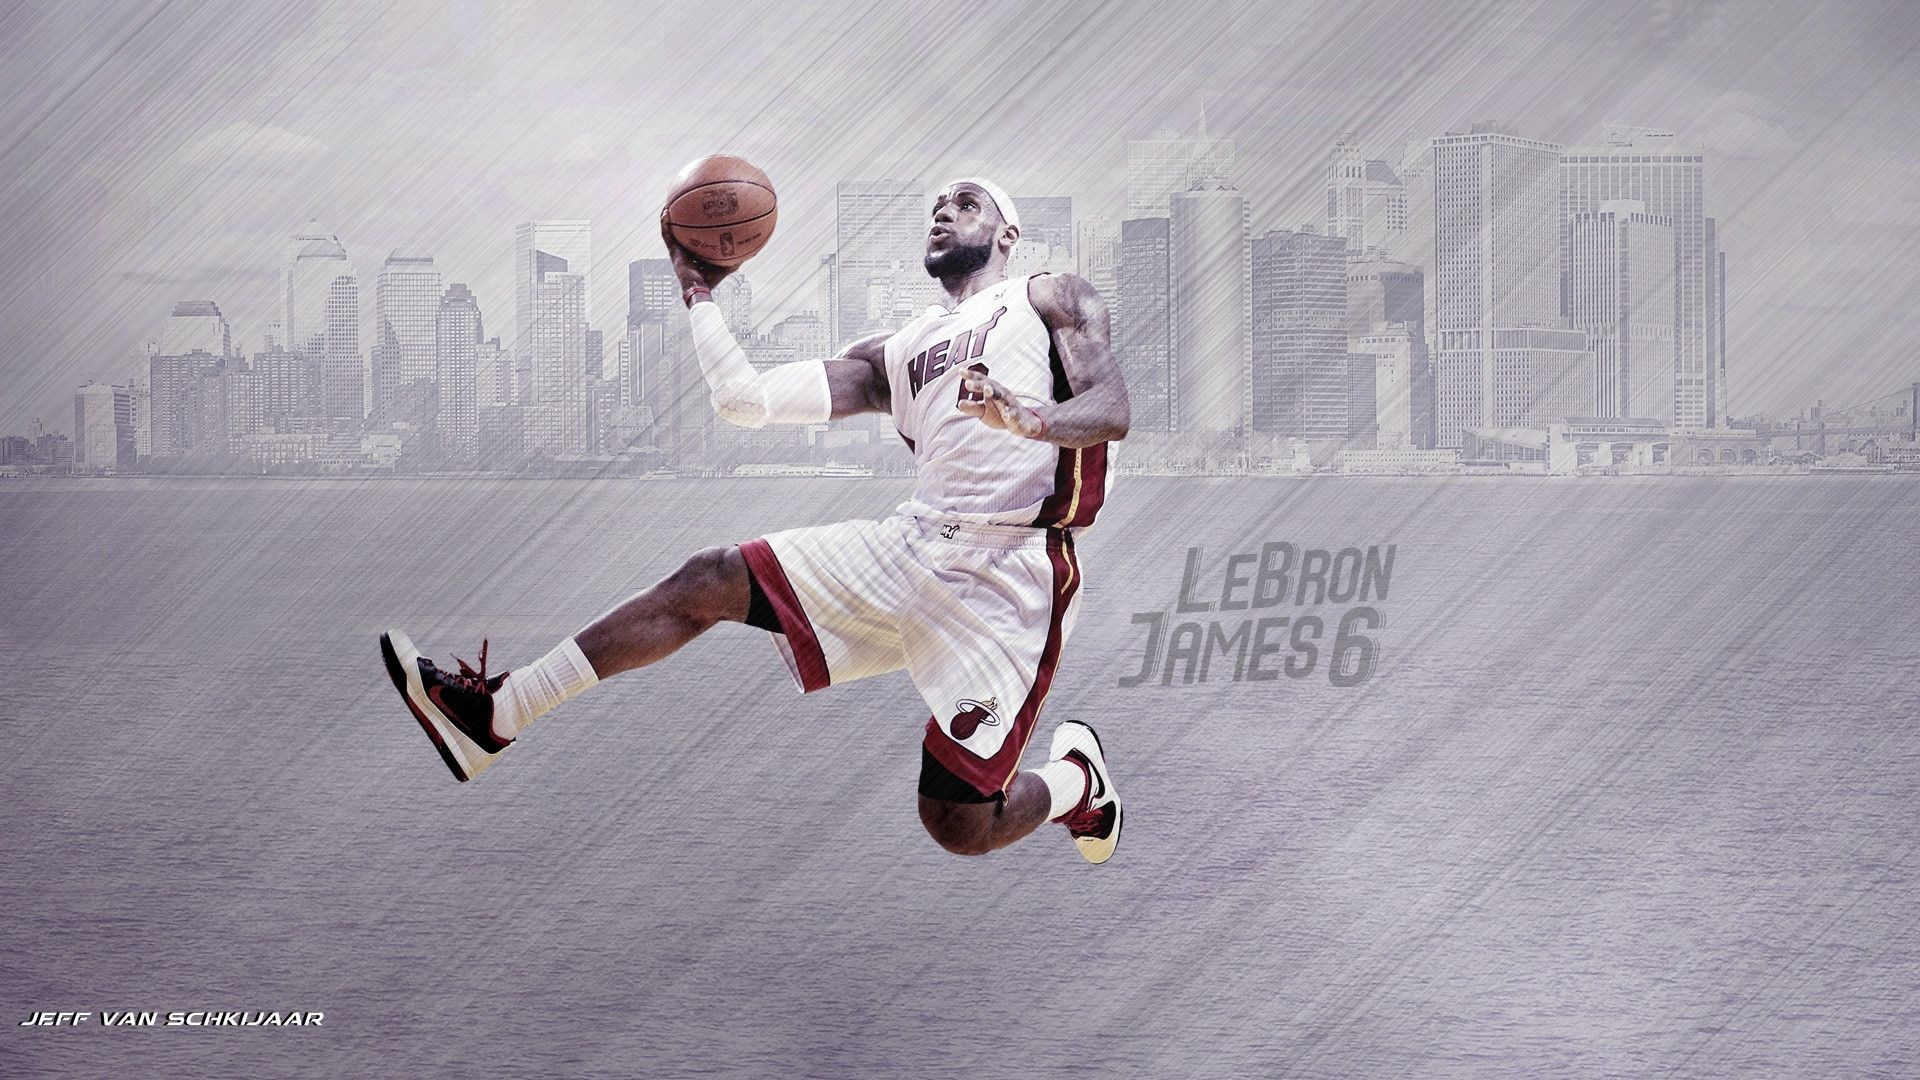 1920x1080 LeBron James Miami Heat Wallpaper 2014 by